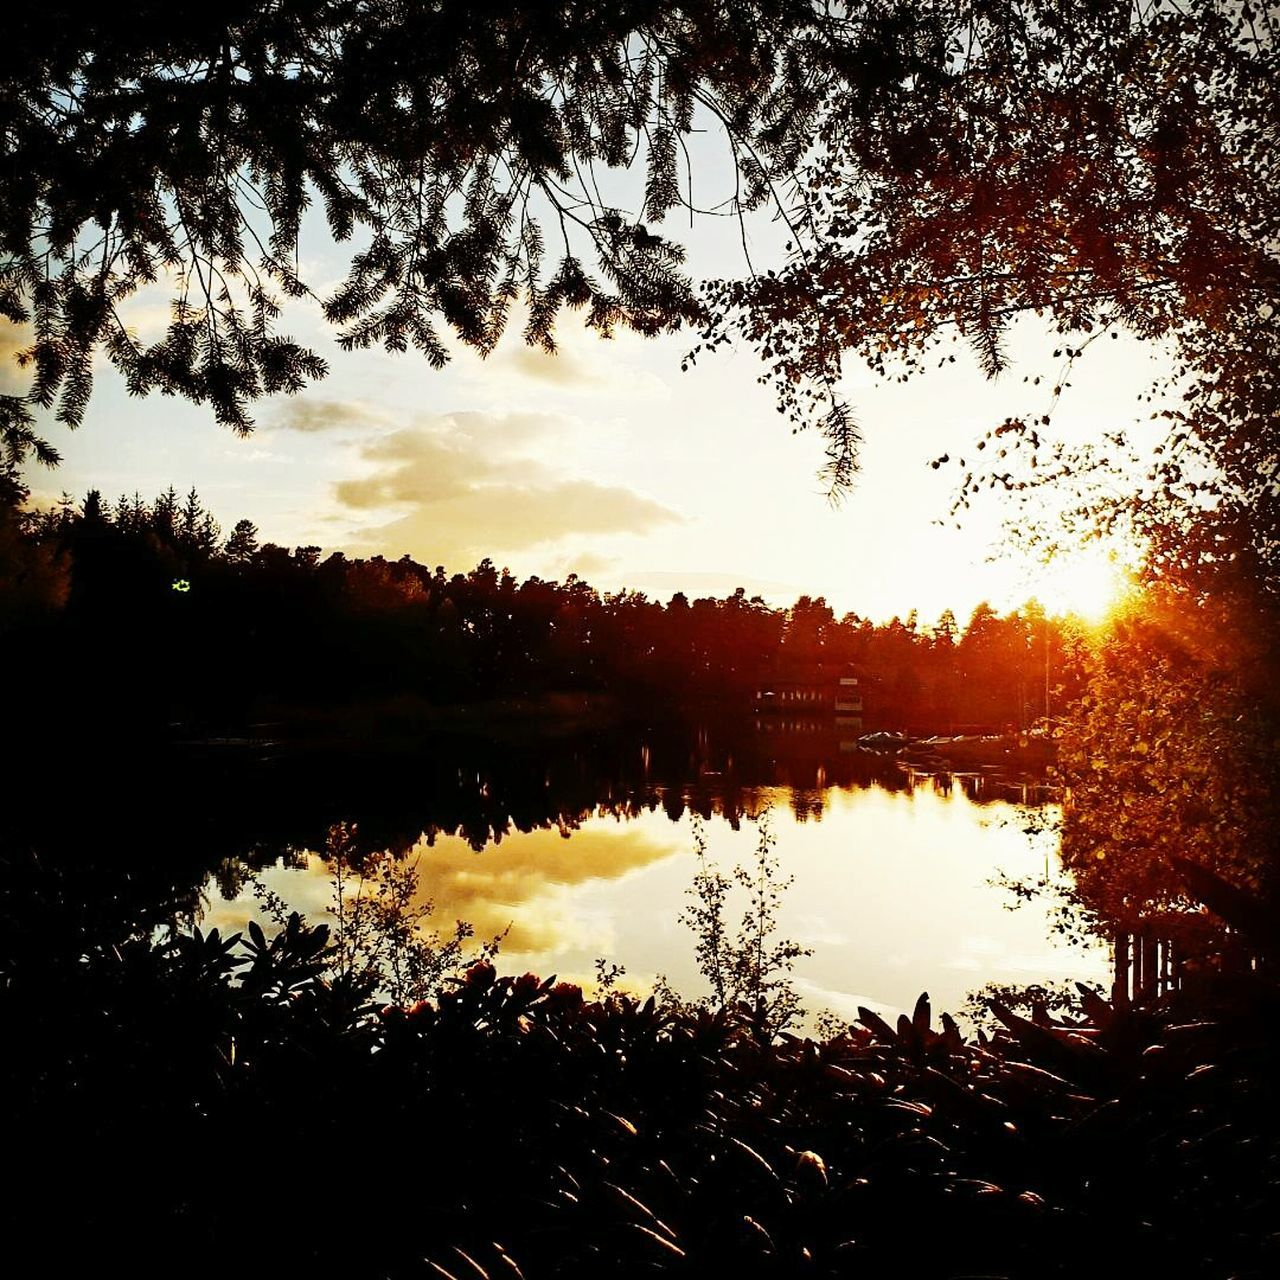 Centre Parcs Whinfell Forest Reflection Water Tree Lake Silhouette Sunset Nature Tranquility Outdoors Beauty In Nature No People Love To Take Photos ❤